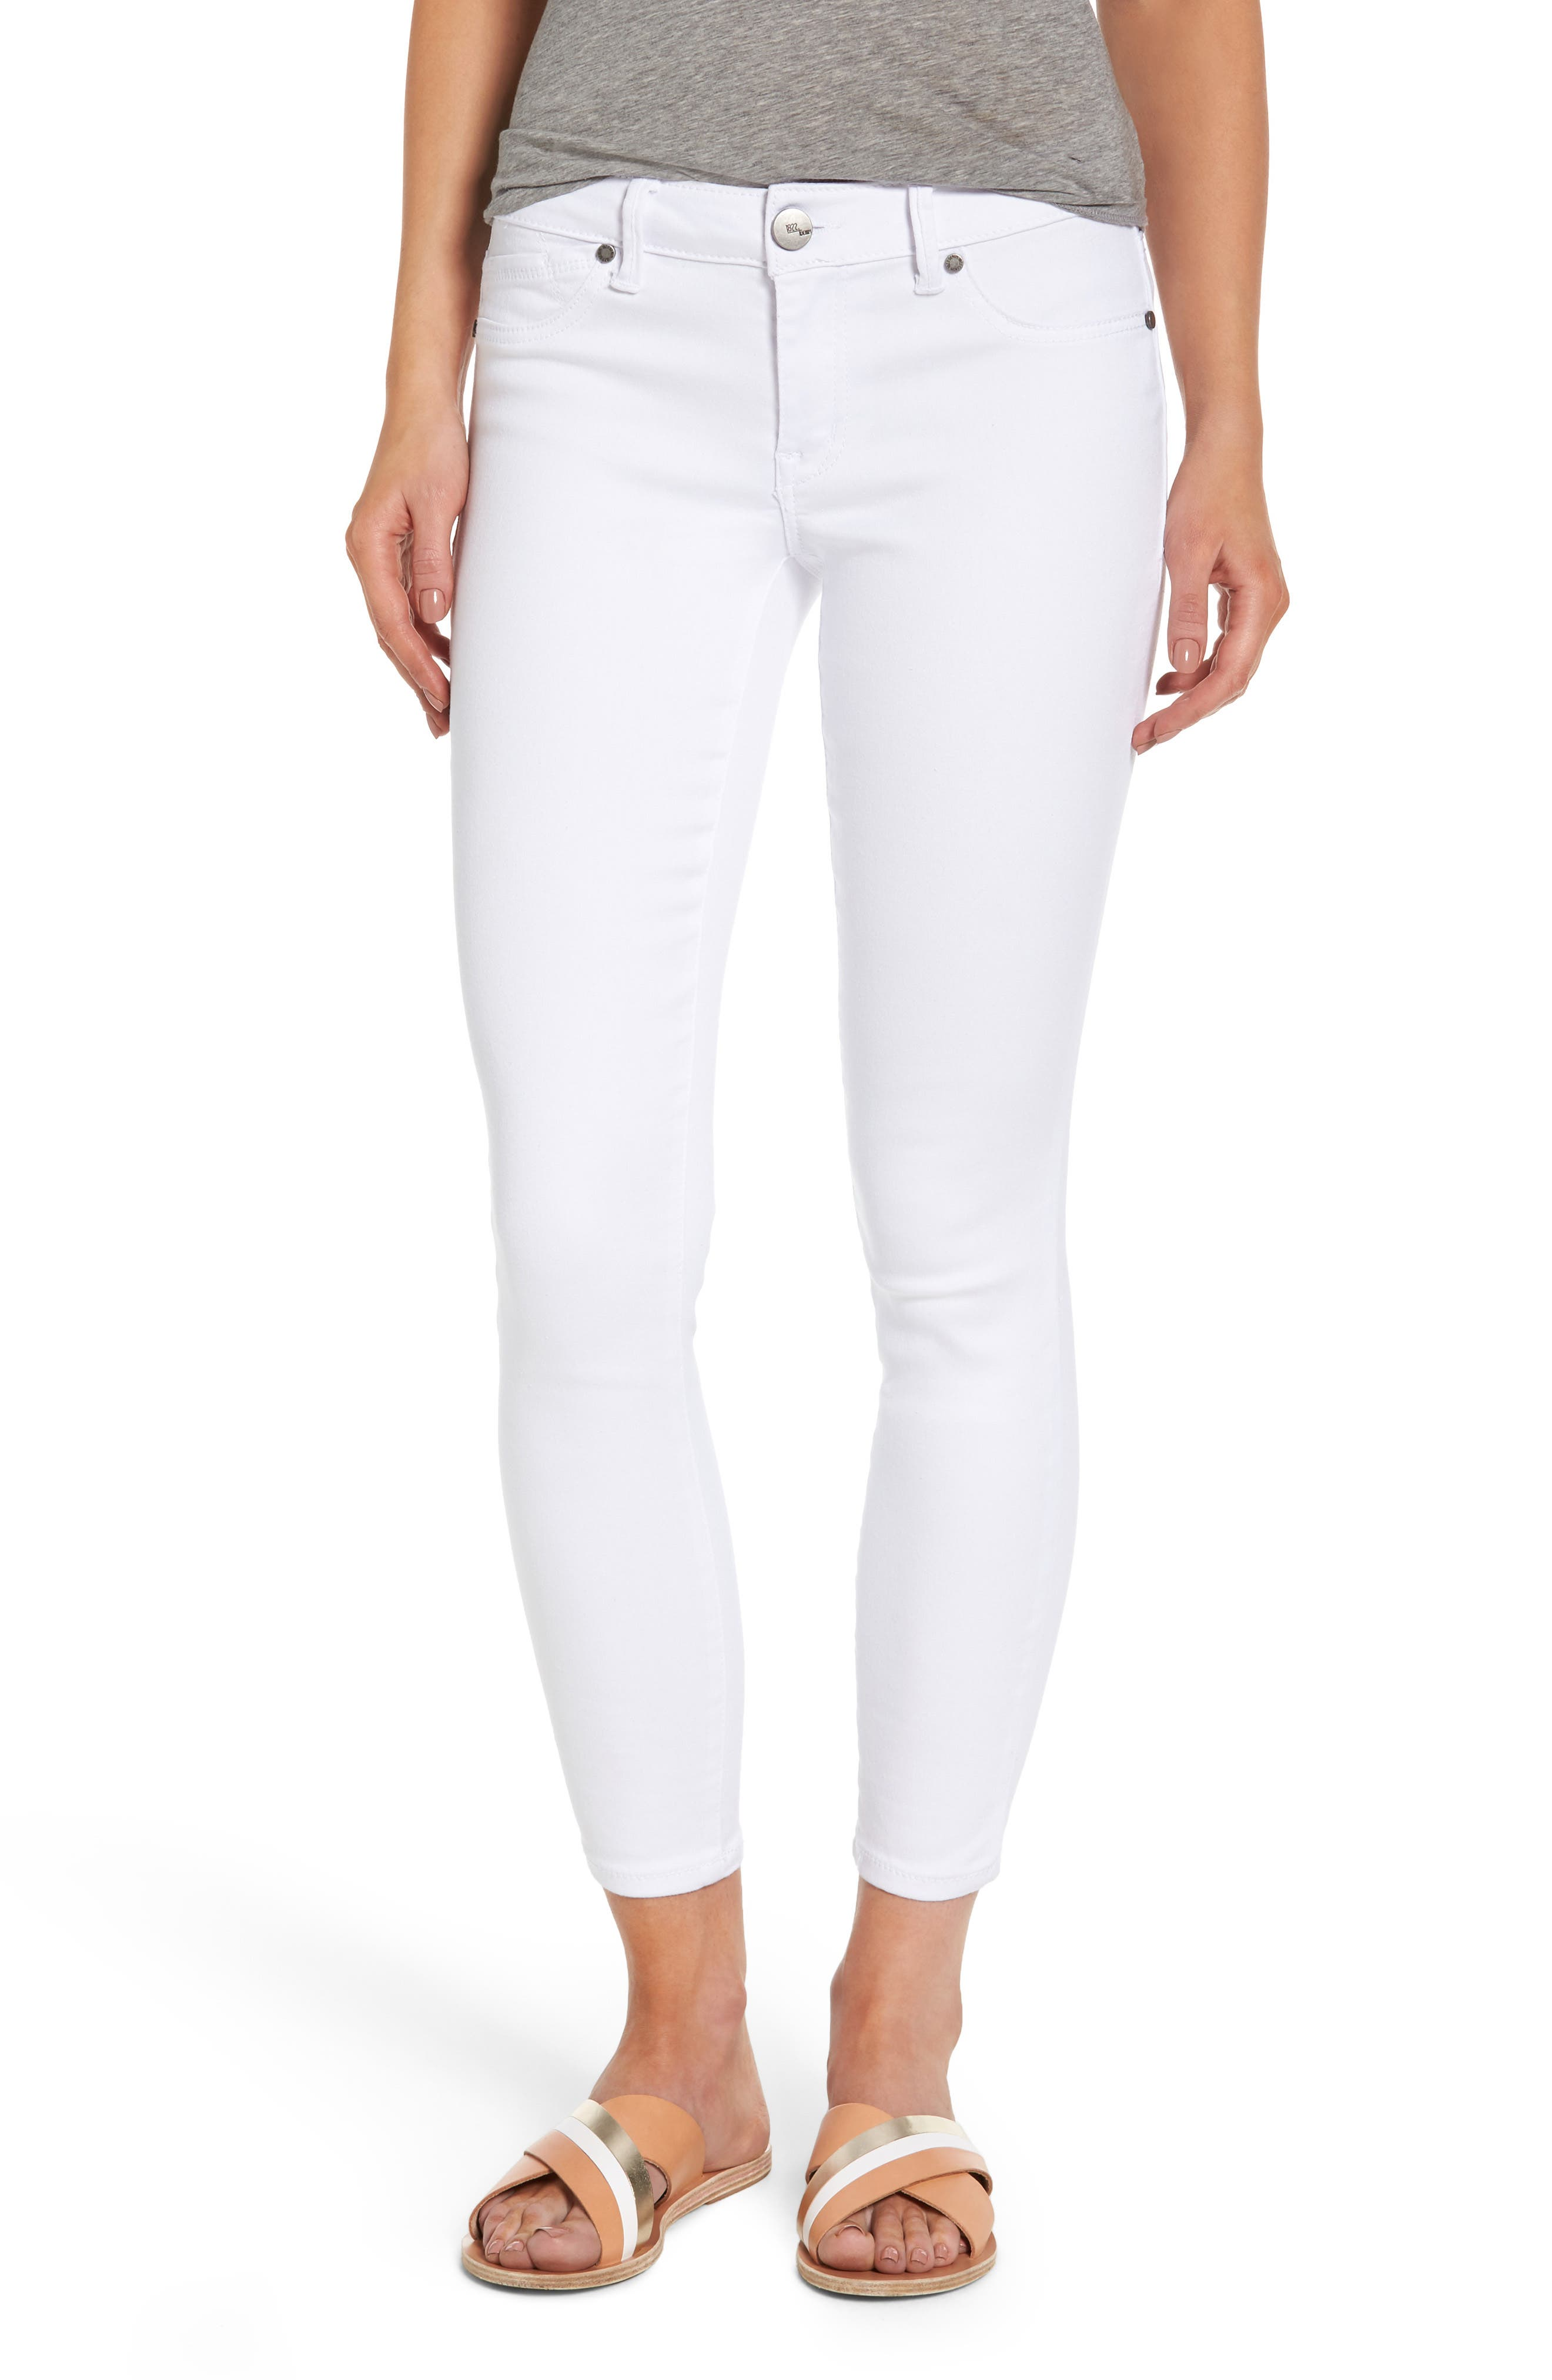 1822 Butter Skinny Jeans,                         Main,                         color, 100